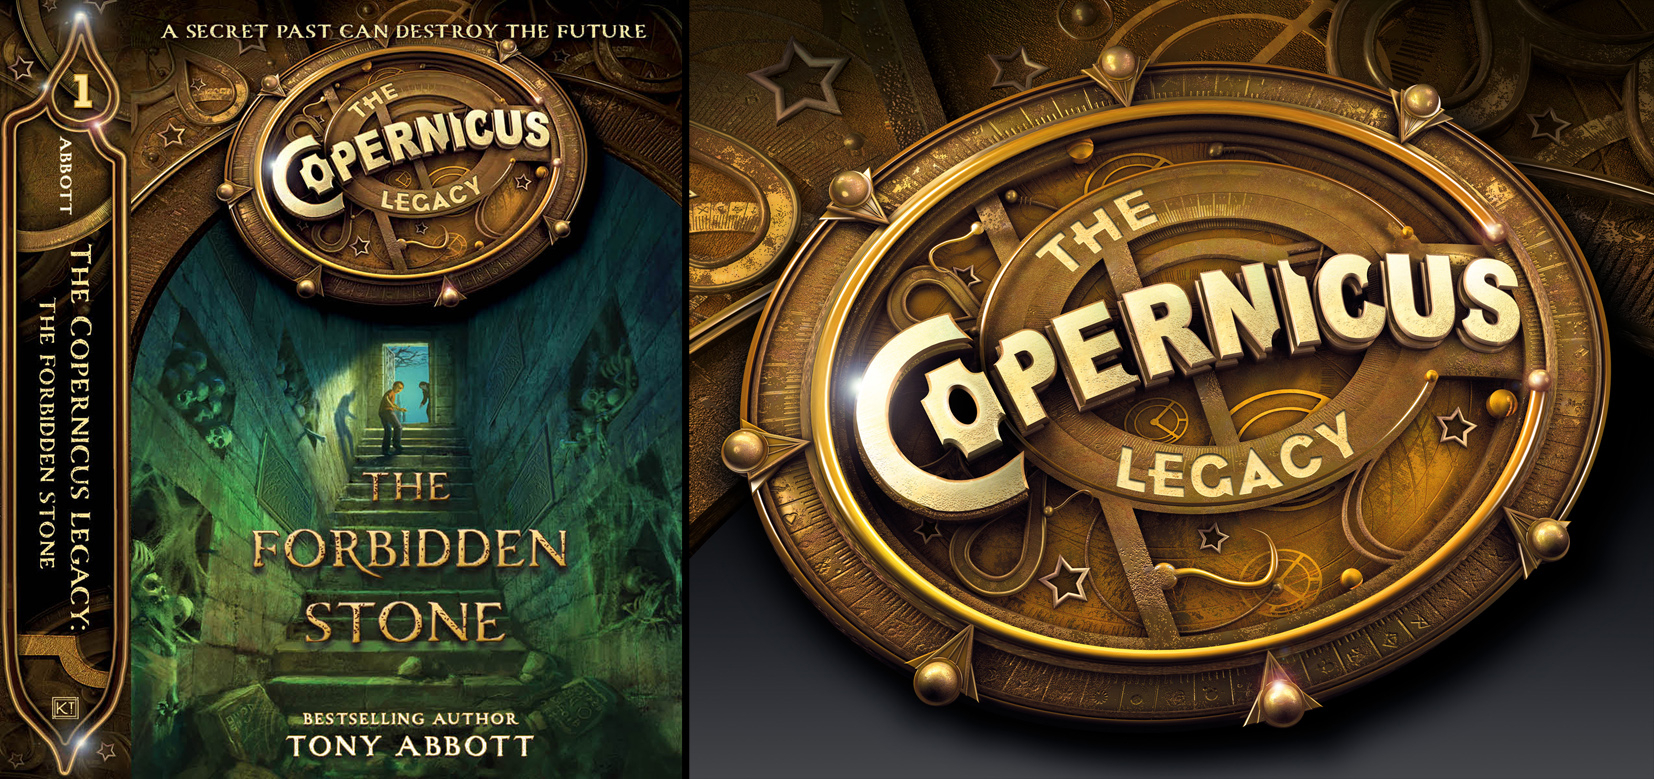 The Copernicus Legacy / The Forbidden Stone